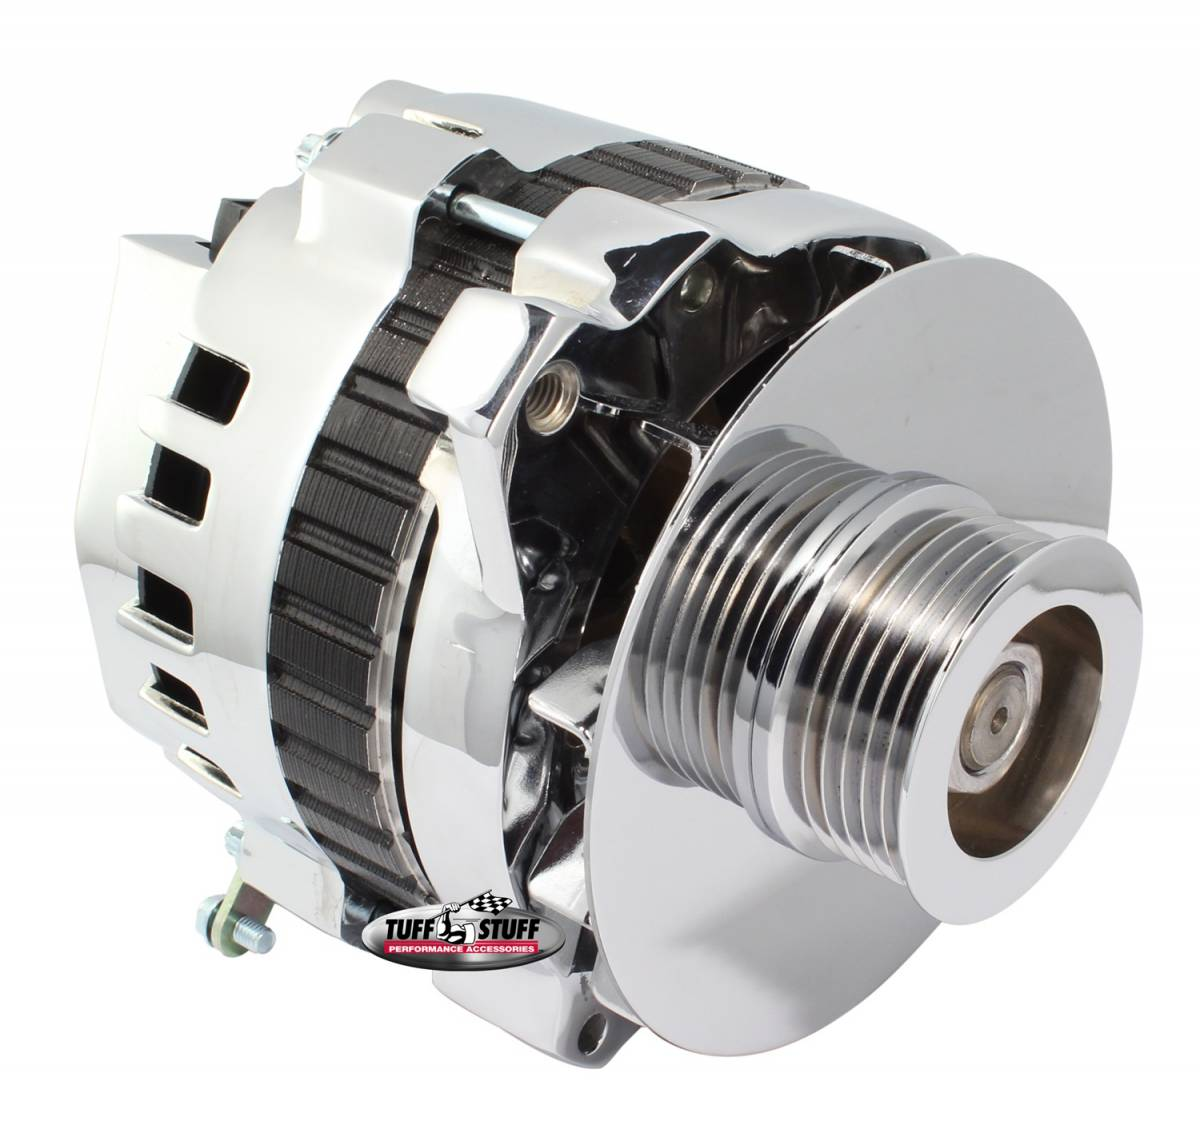 Tuff Stuff Performance - Alternator 160 AMP 1 Wire Or OEM 6 Groove Pulley 6.125 in. Bolt To Bolt Chrome 7866F6G